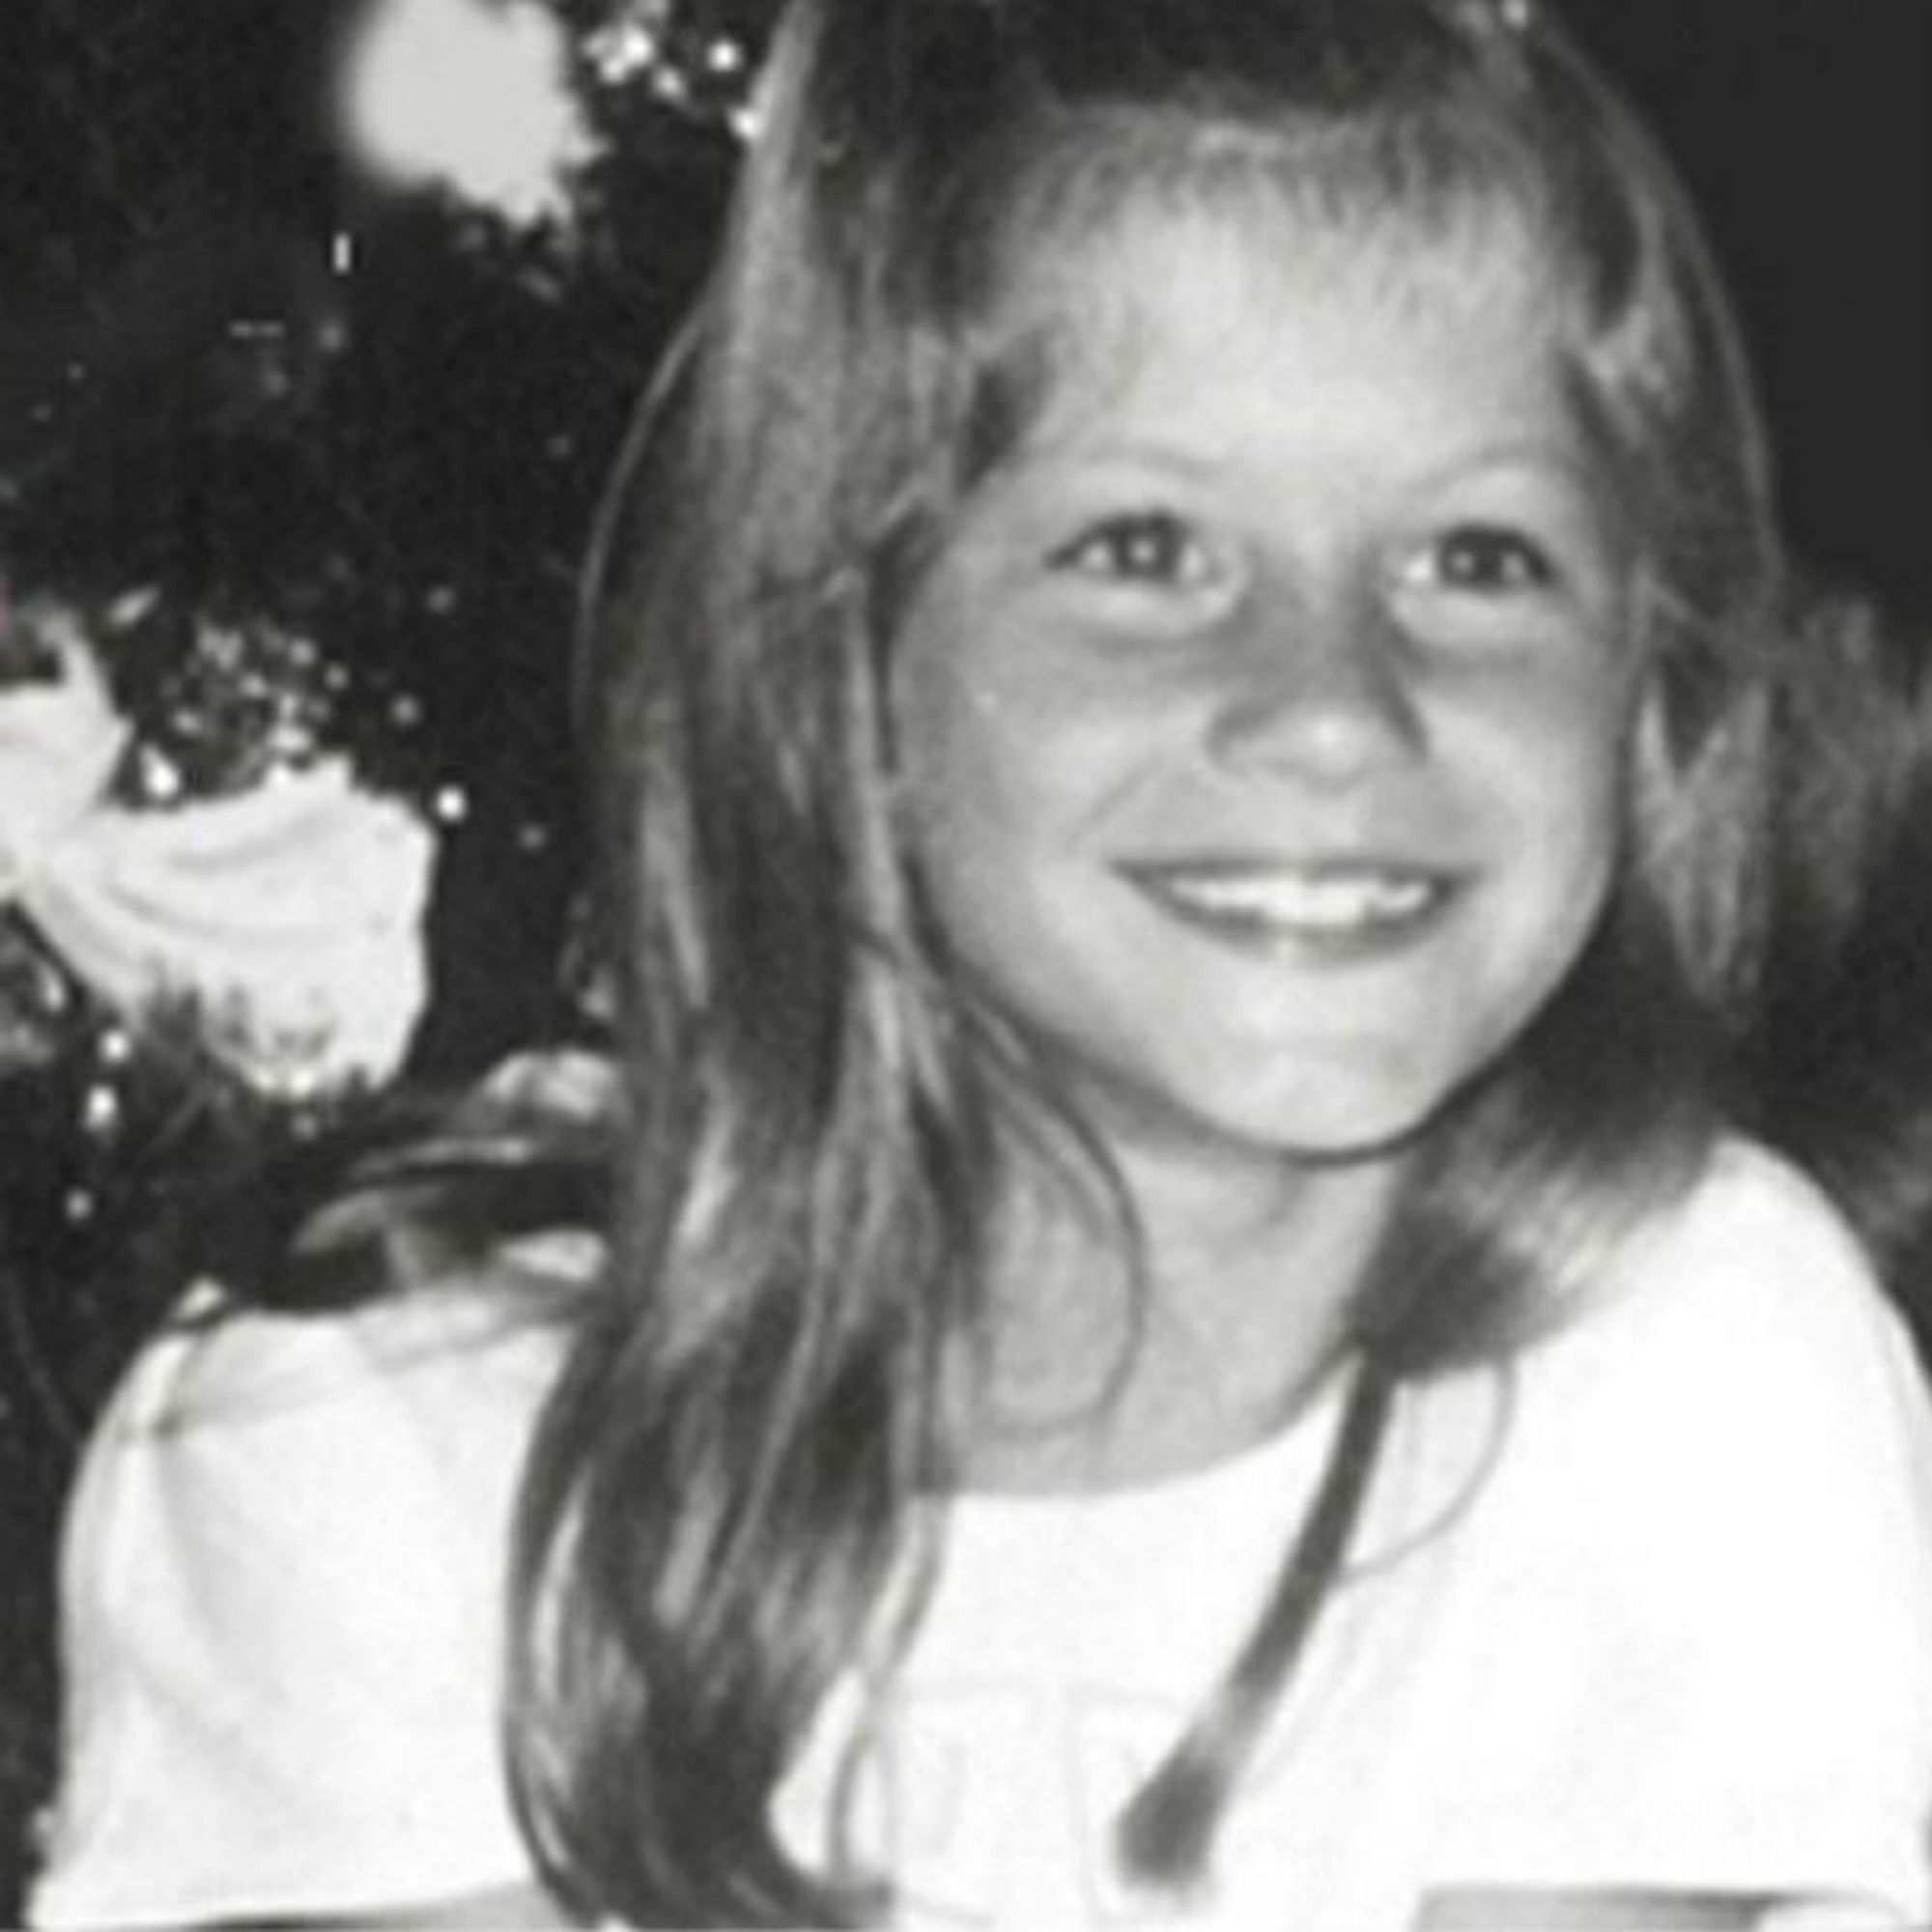 Brazilian model Gisele Bündchen turns 41: her childhood photos and her rise to stardom